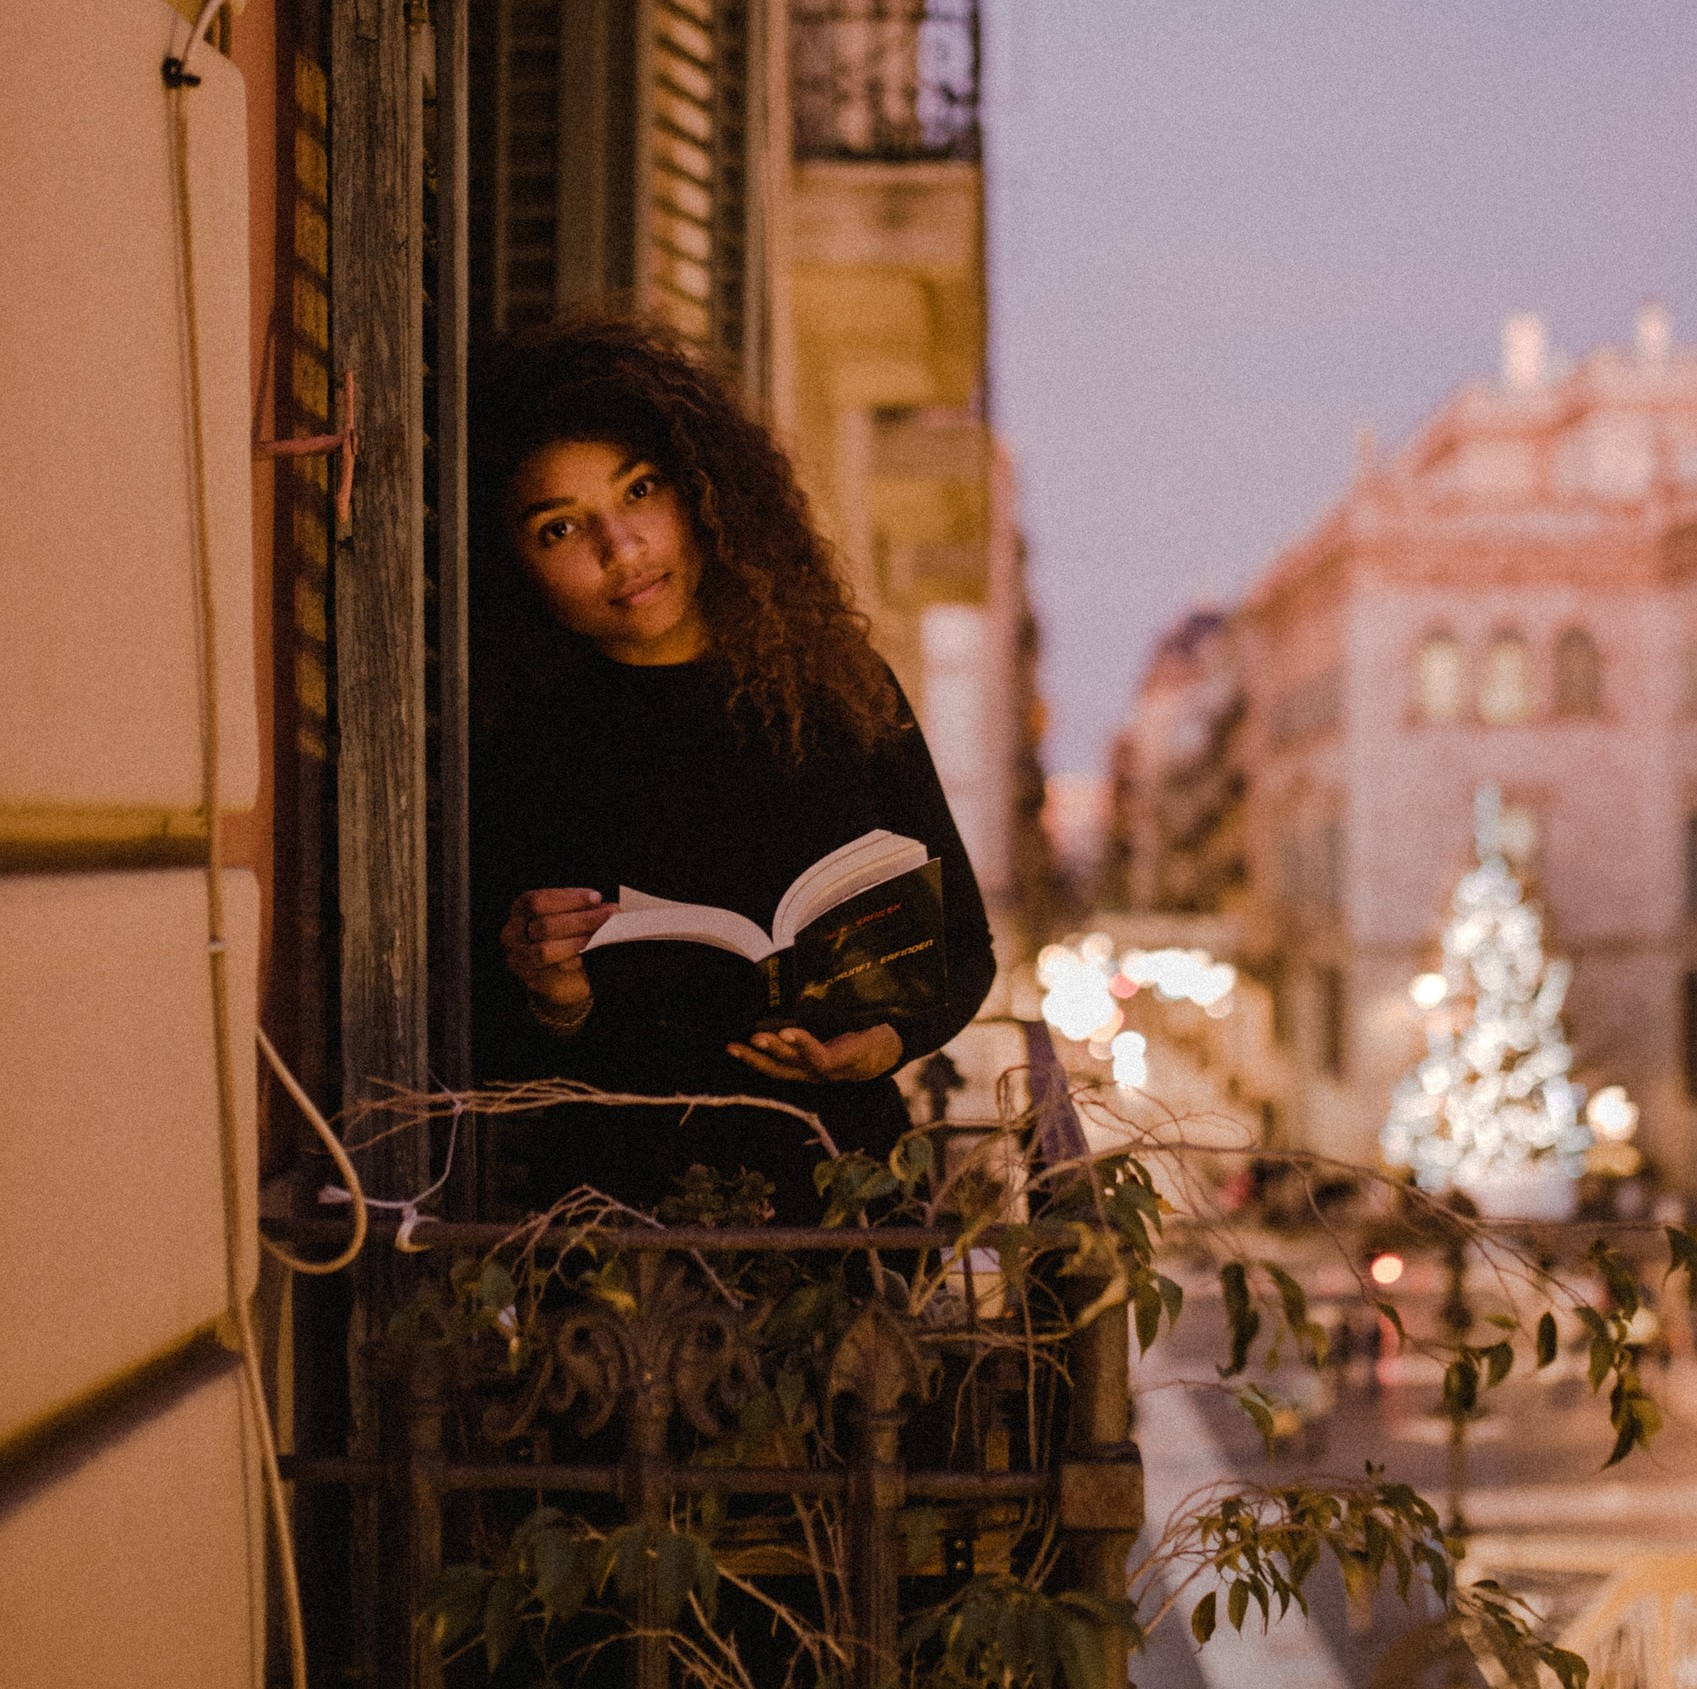 Photo of a woman standing on a balcony reading a book. Reading is part of her evening routine.